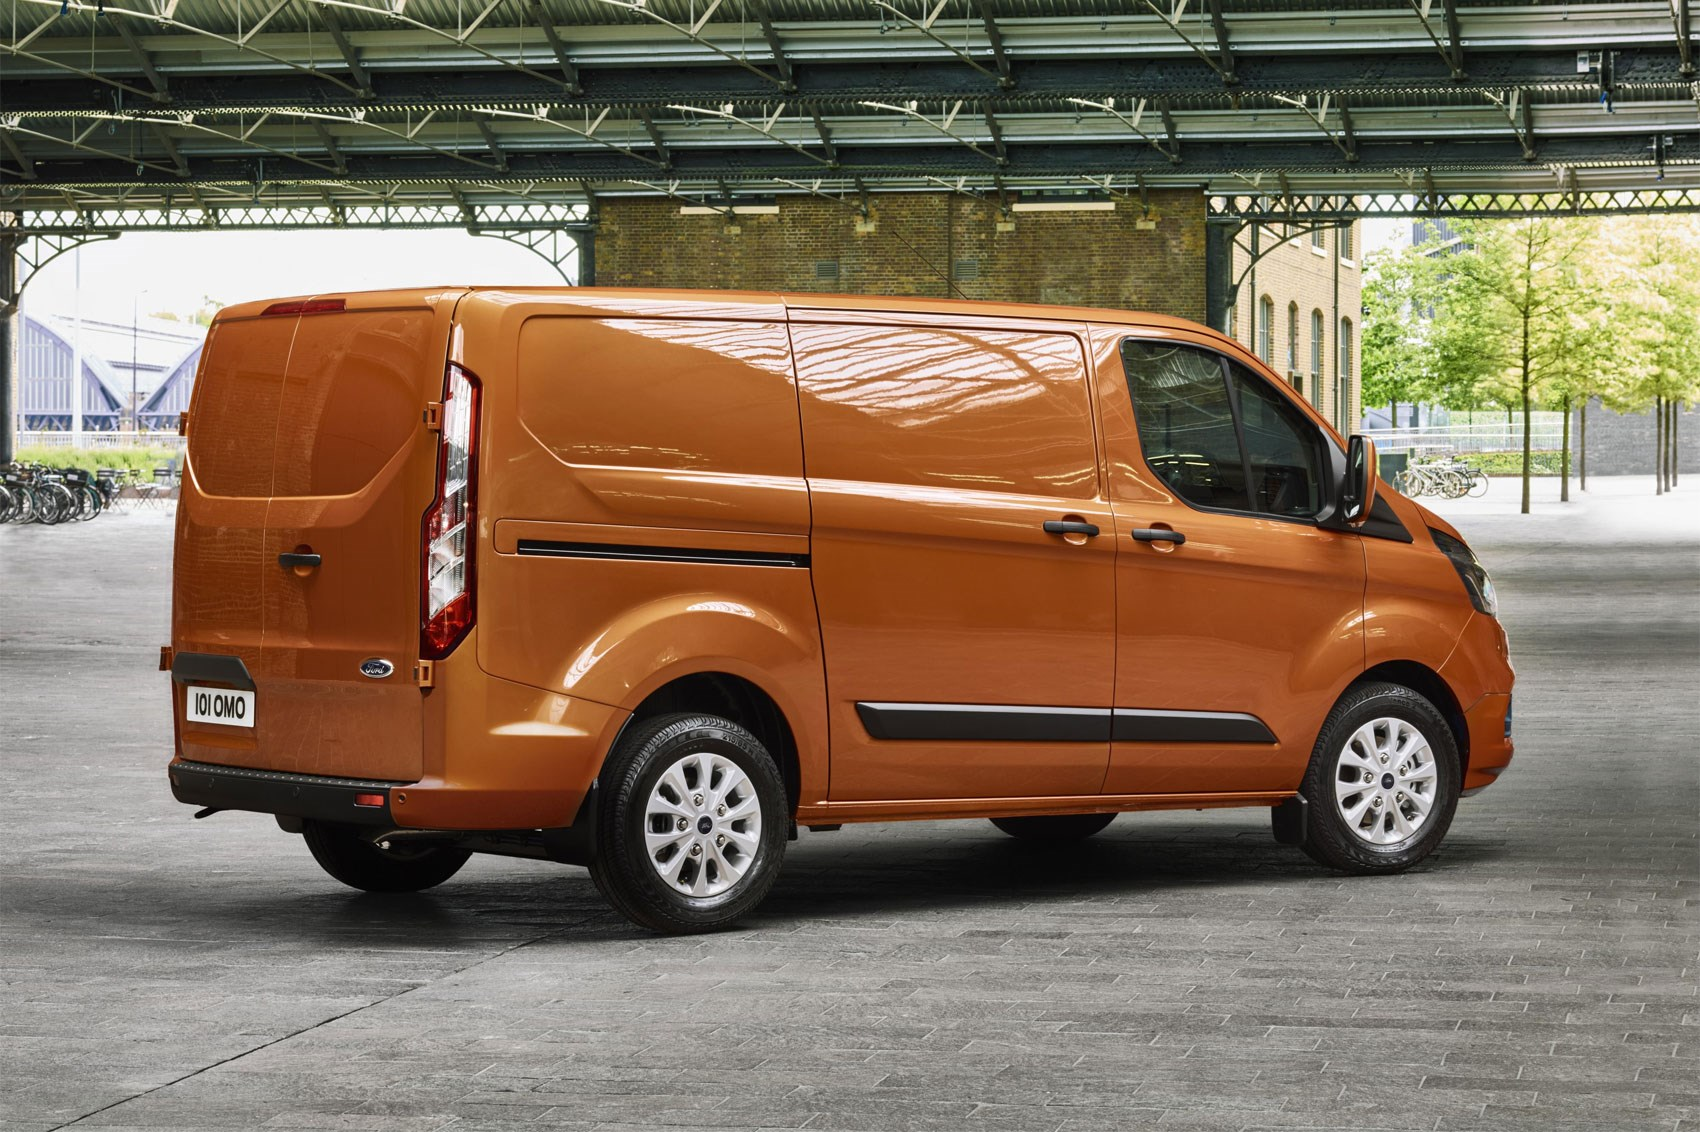 Ford Tourneo Custom minibus: technical specifications, reviews 15